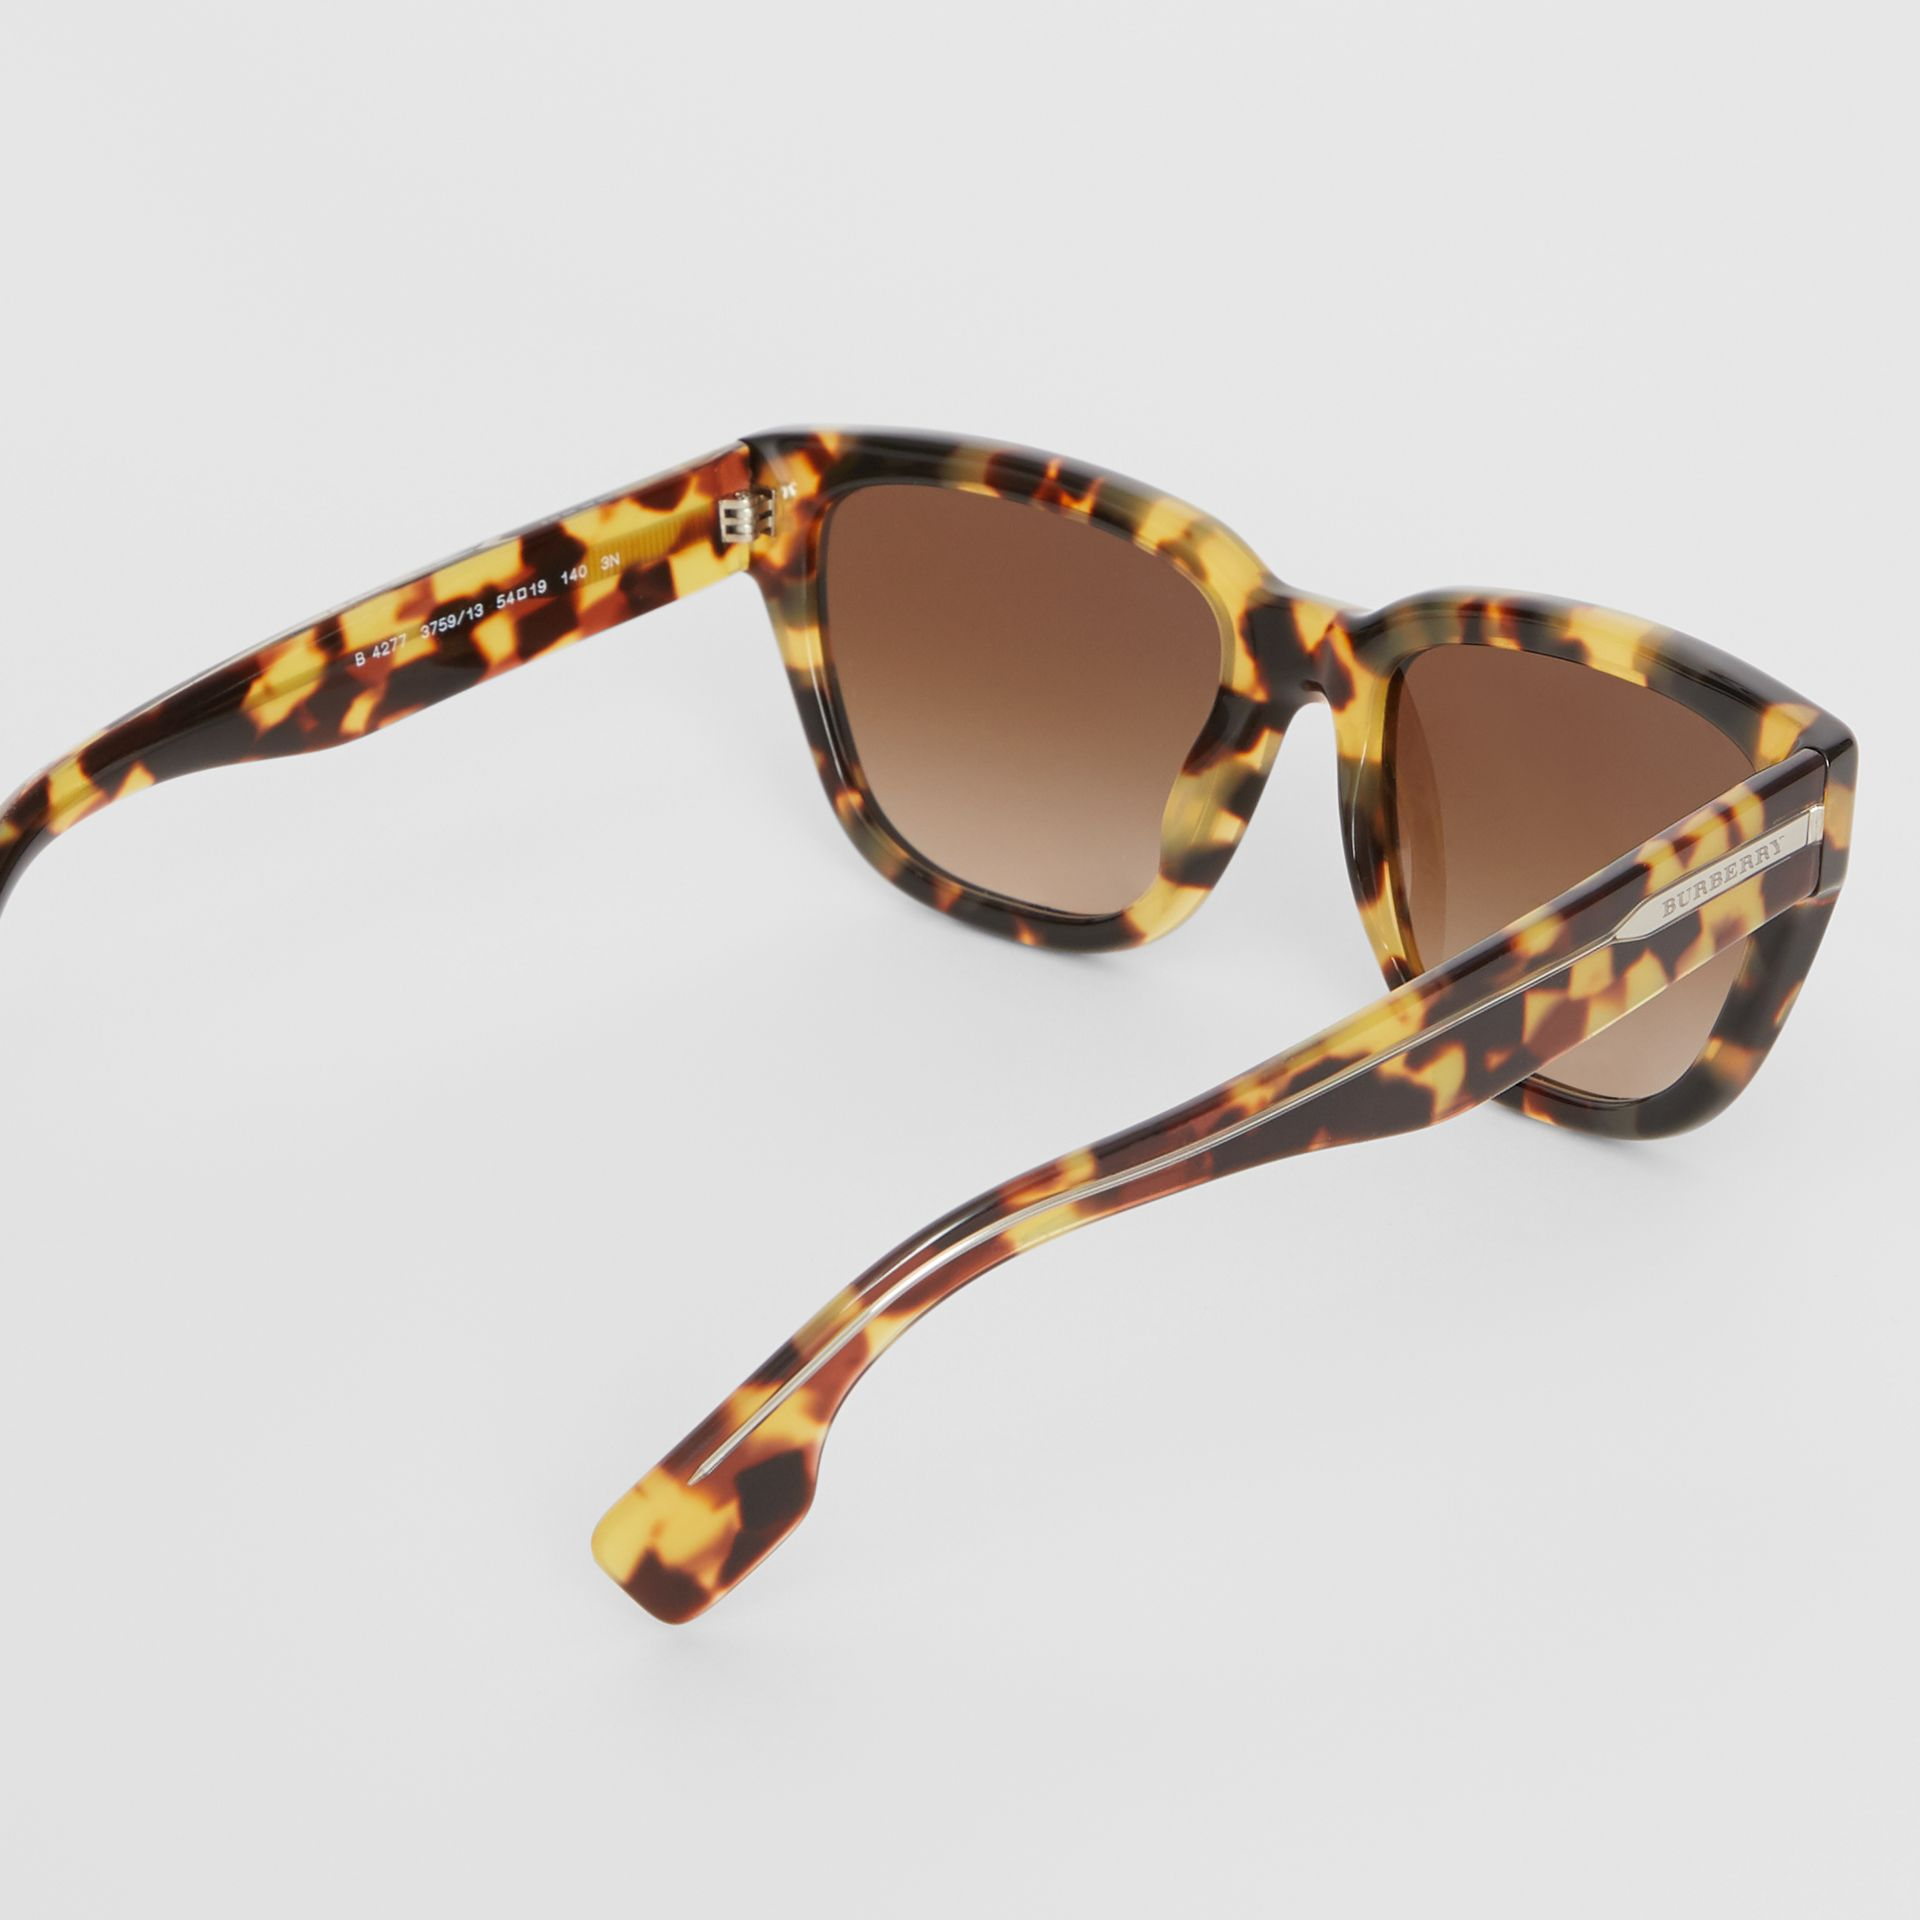 Square Frame Sunglasses in Tortoise Shell - Women | Burberry Singapore - gallery image 4